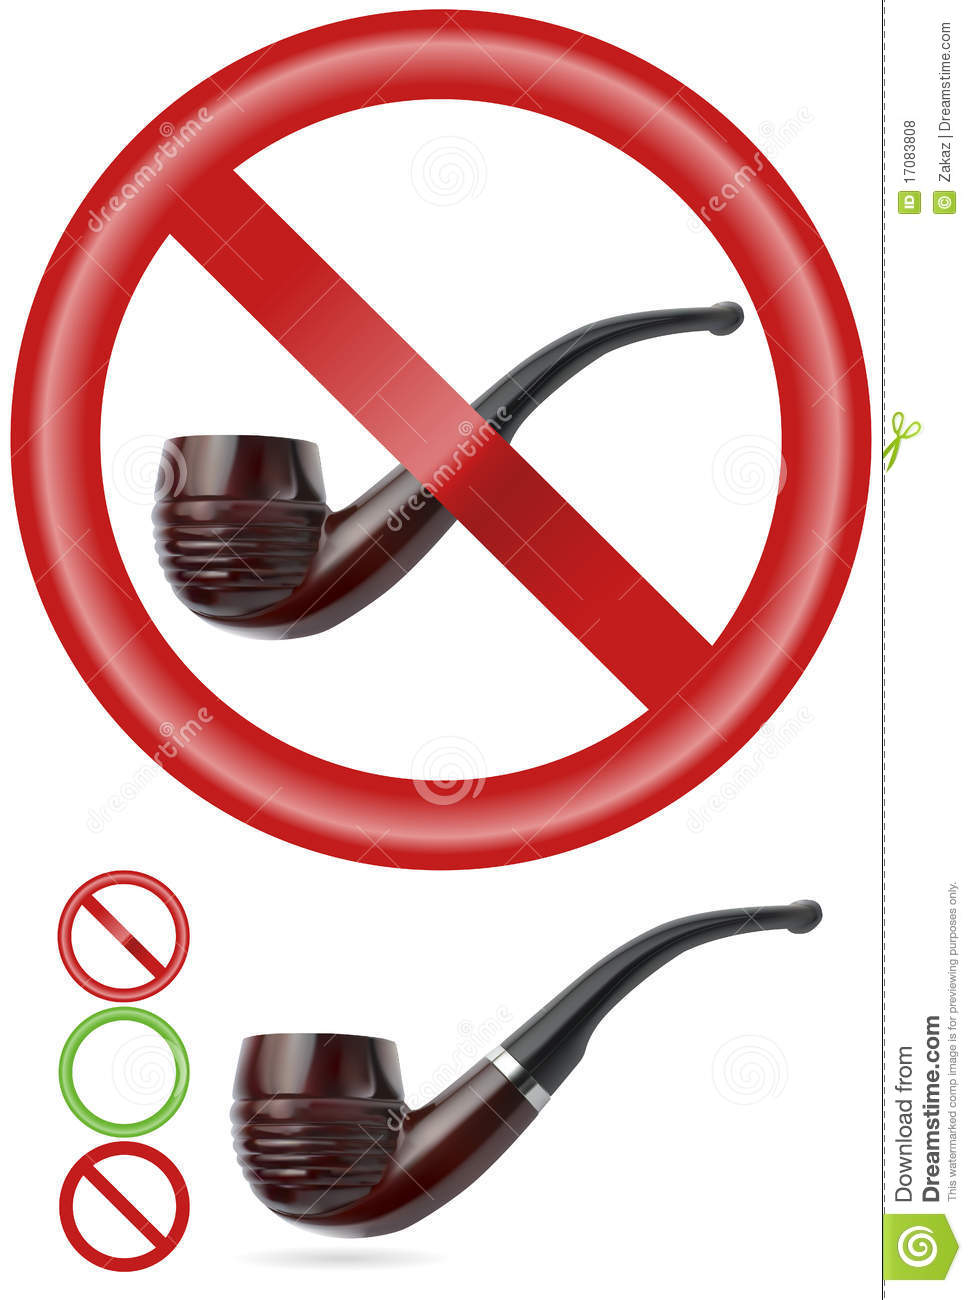 Smoking pipe with signs | Vector